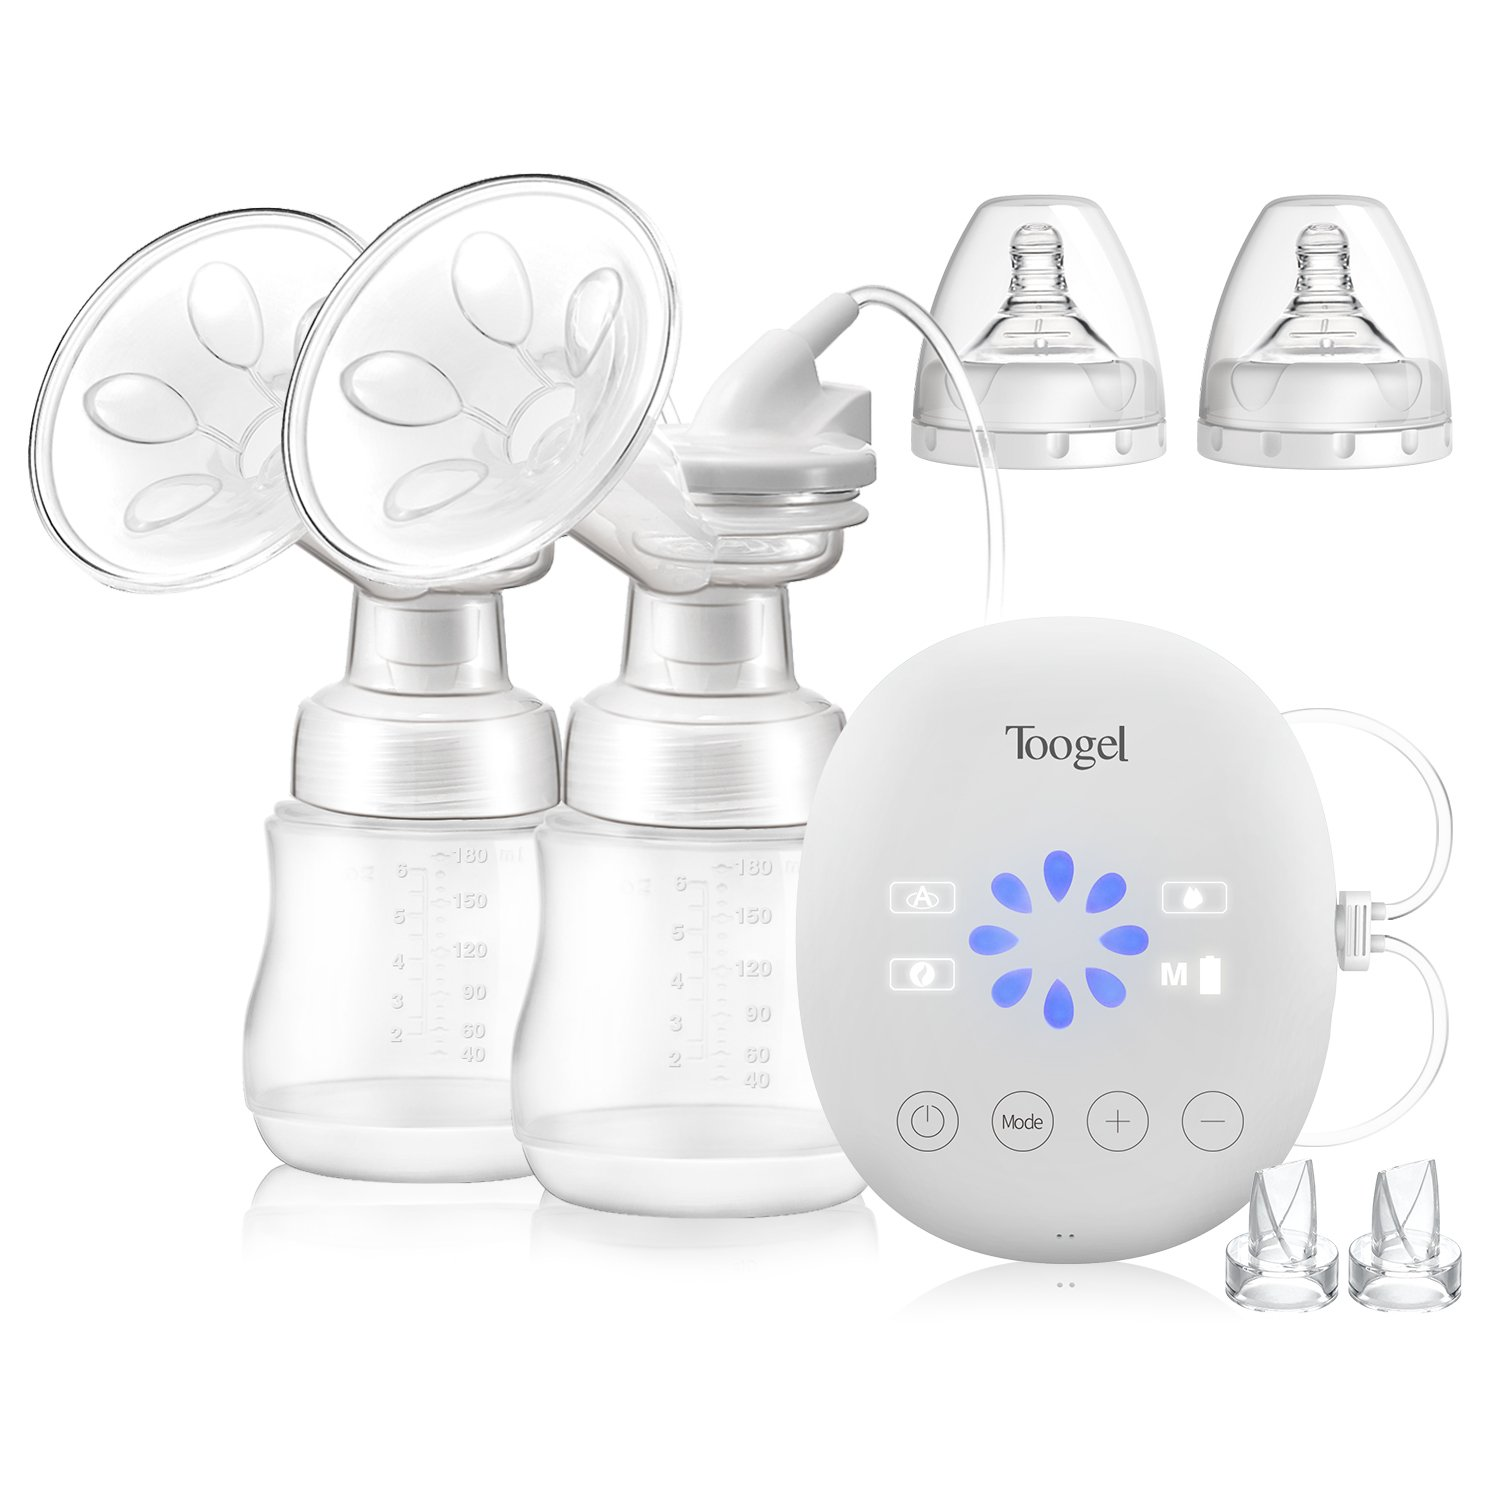 Electric Breast Pump Double/Single Rechargeable Breastfeeding Pump Comfortable Milk Saver Suction Full Touchscreen with Massage/Auto/Manual Mode & 8 Level Settings Toogel